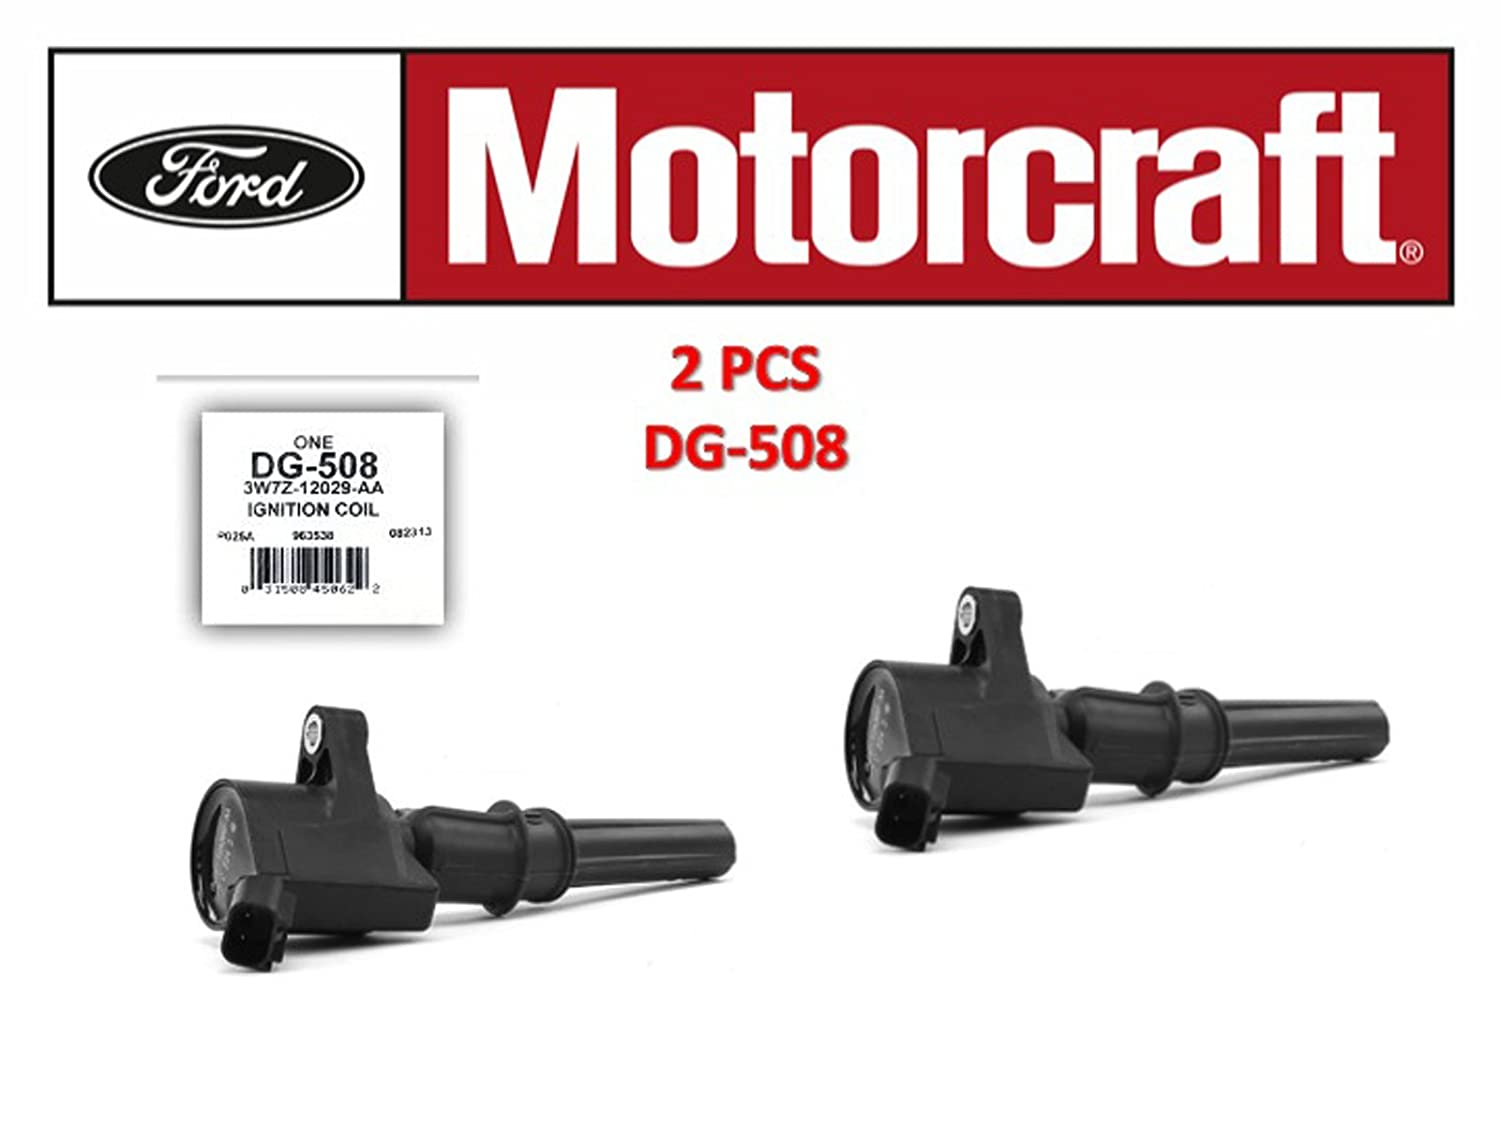 Motorcraft DG508 Ignition Coil for Ford 4.6L 5.4L V8 DG457 DG472 DG491 CROWN VICTORIA EXPEDITION F-150 F-250 MUSTANG LINCOLN MERCURY EXPLORER DG-508 3W7Z-12029-AA set of 2